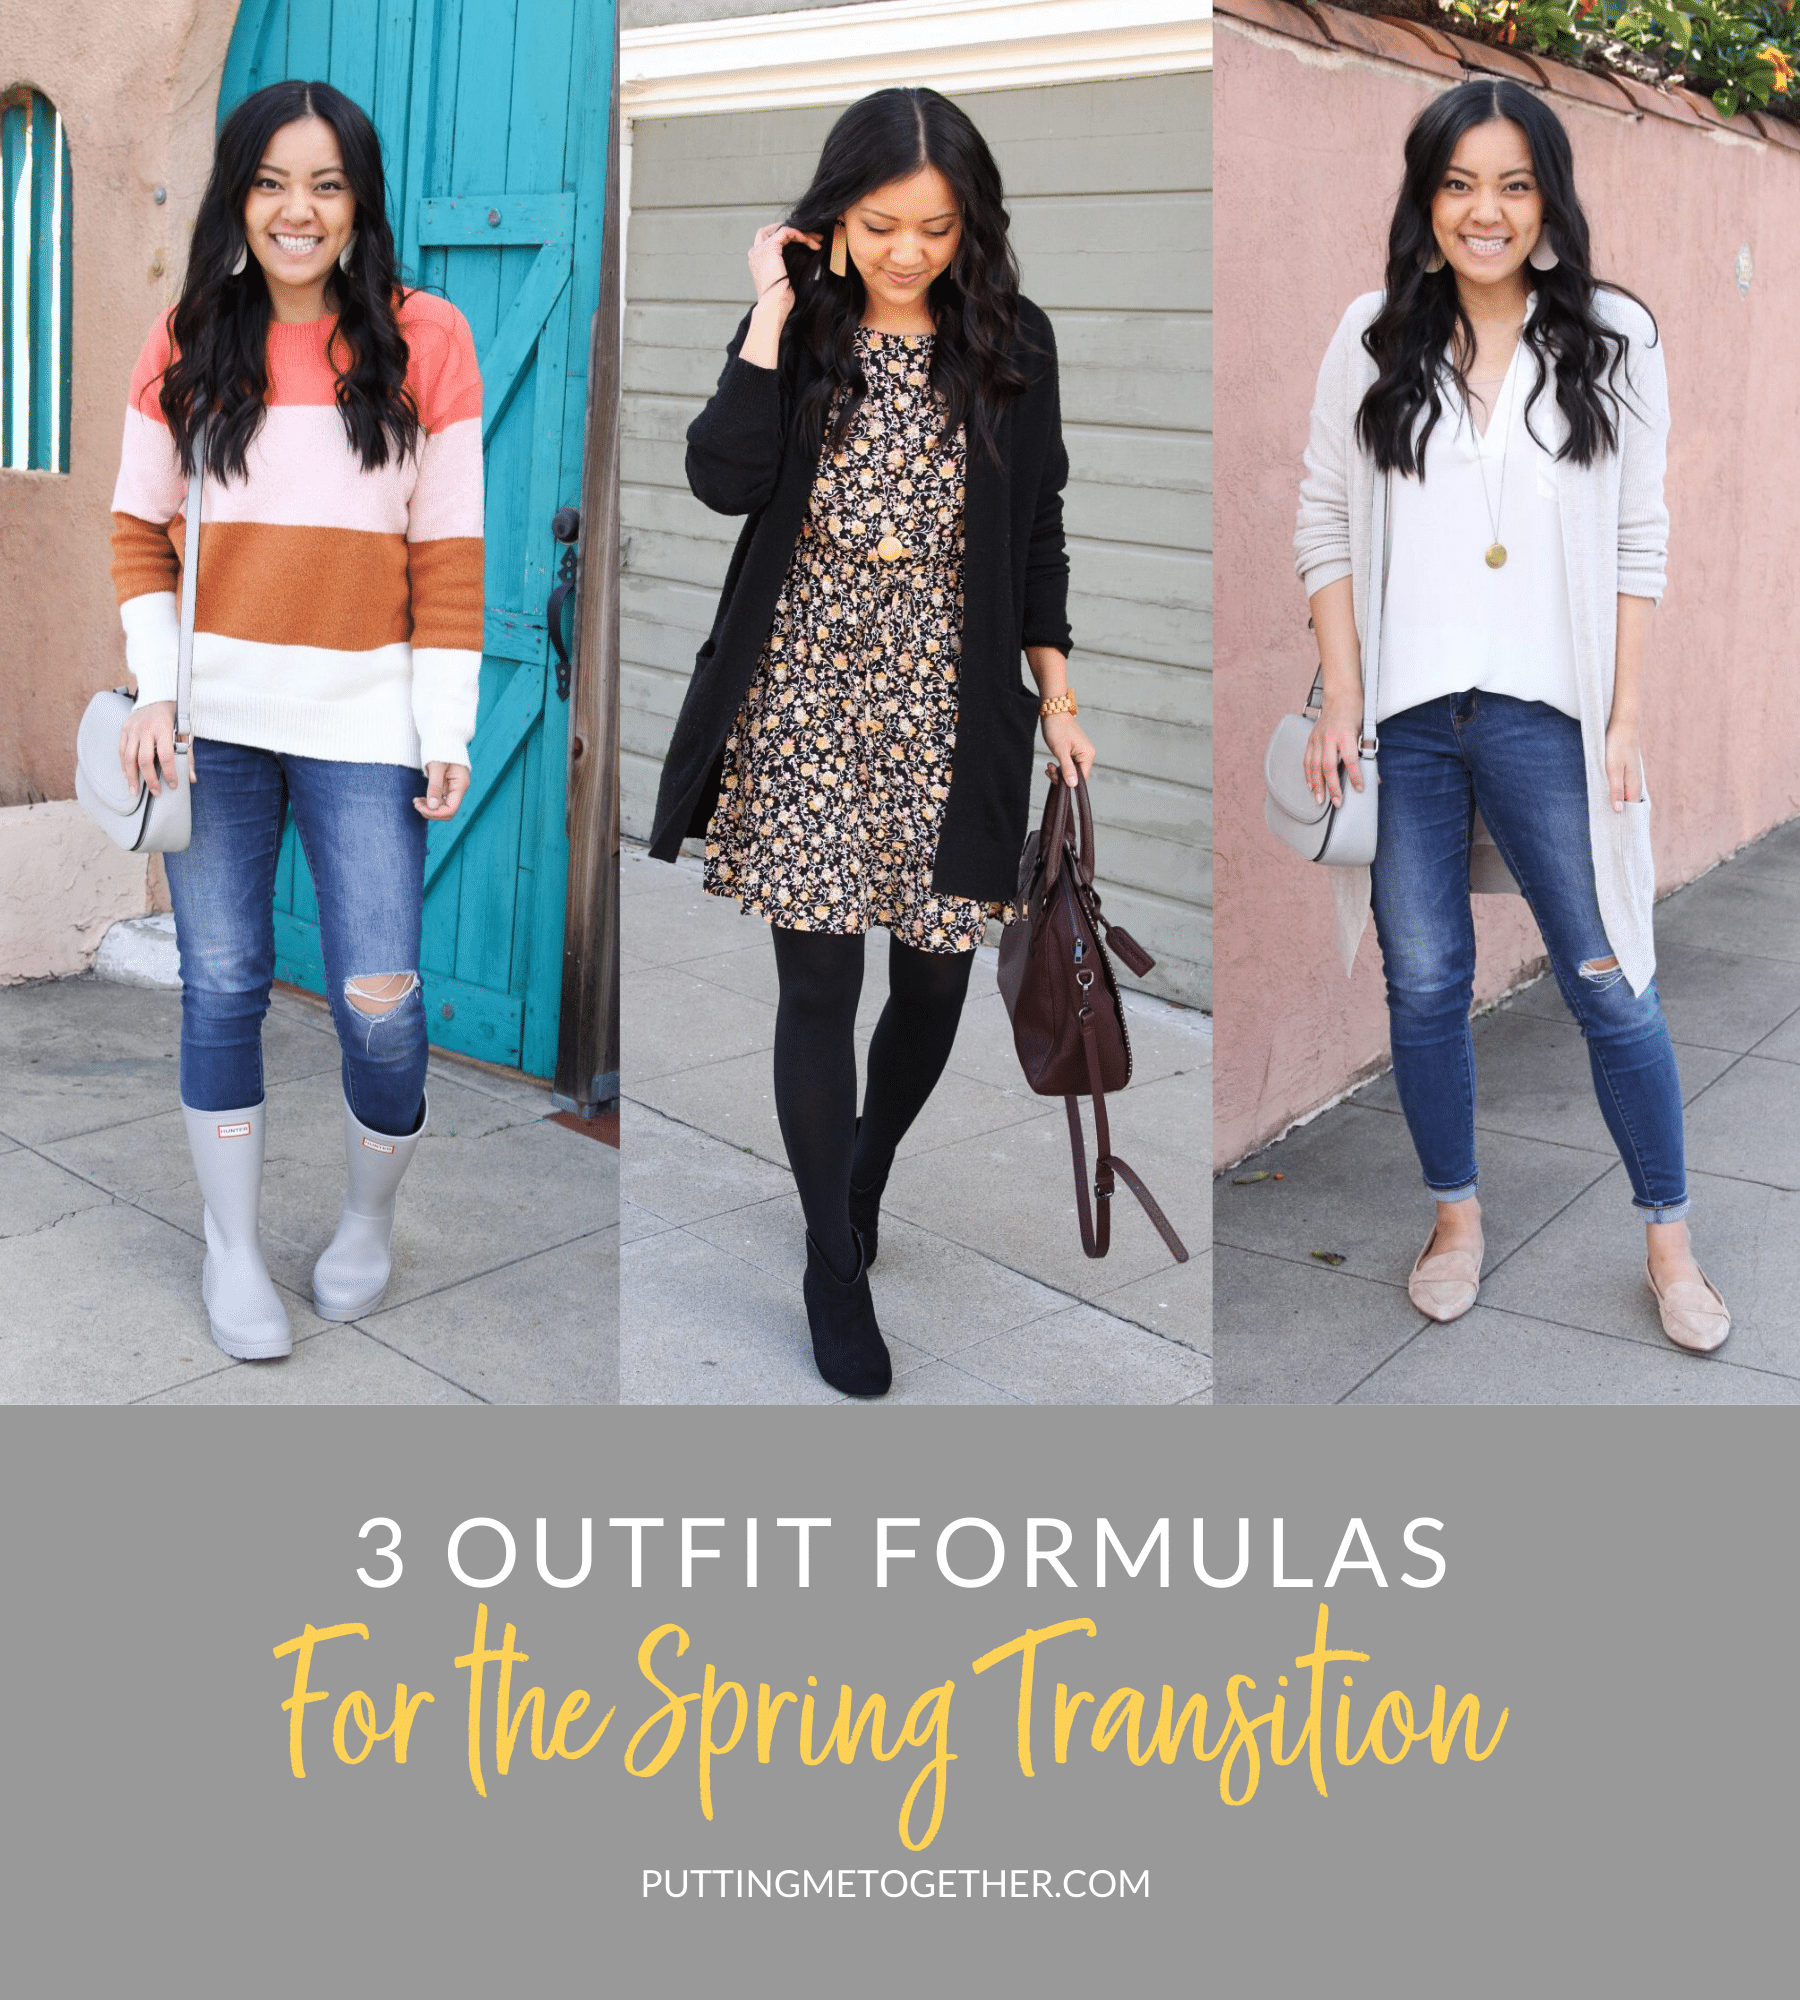 3 Outfit Formulas for the Spring Transition